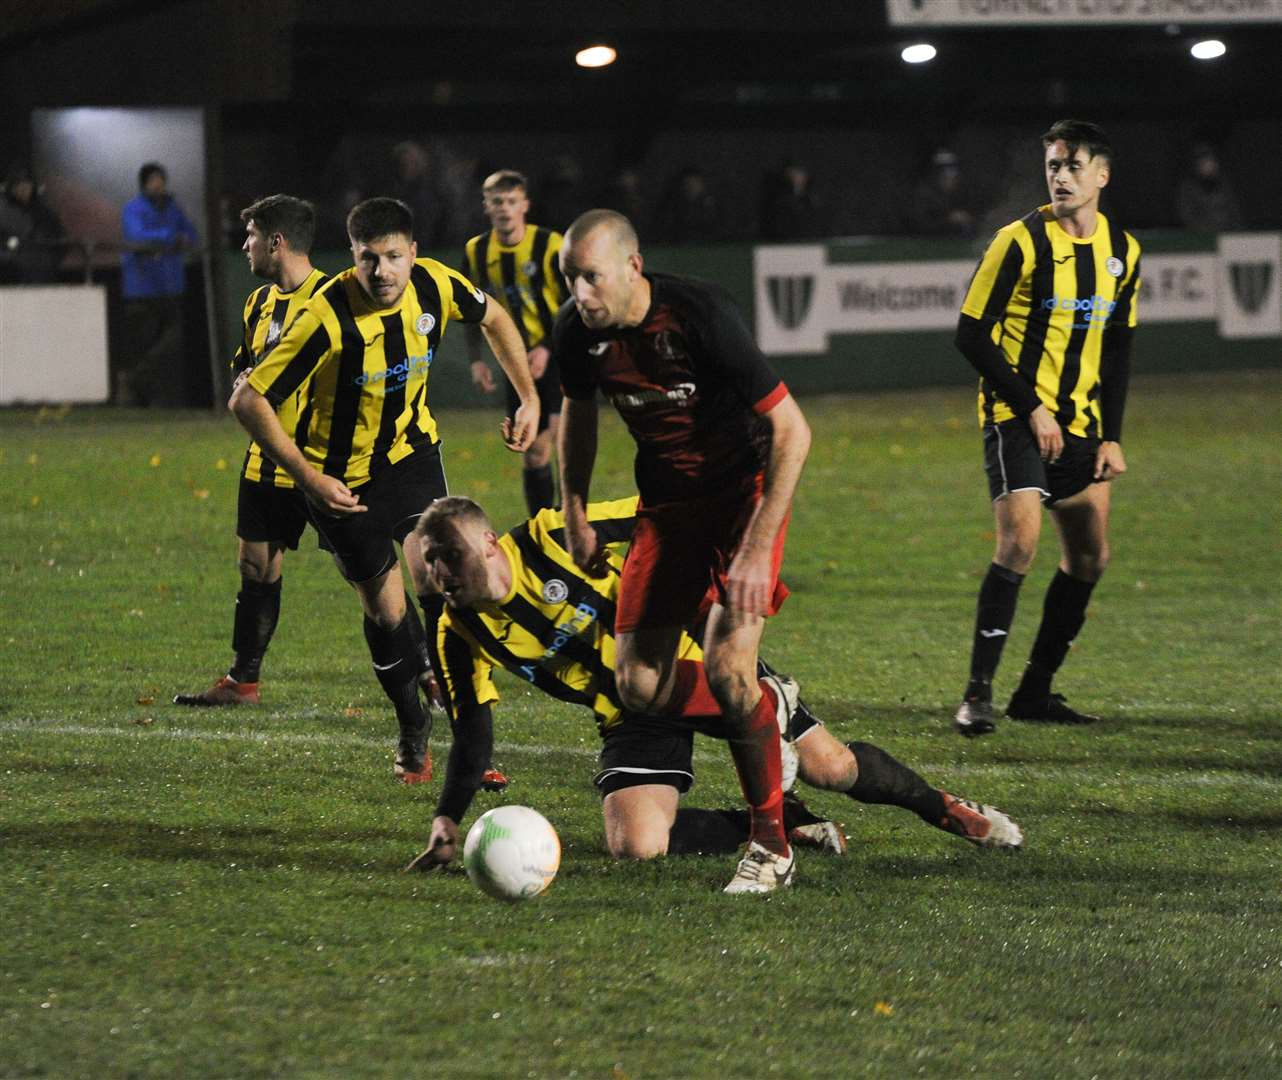 Cup Final action between Holbeach and Rothwell Corinthians (43002768)